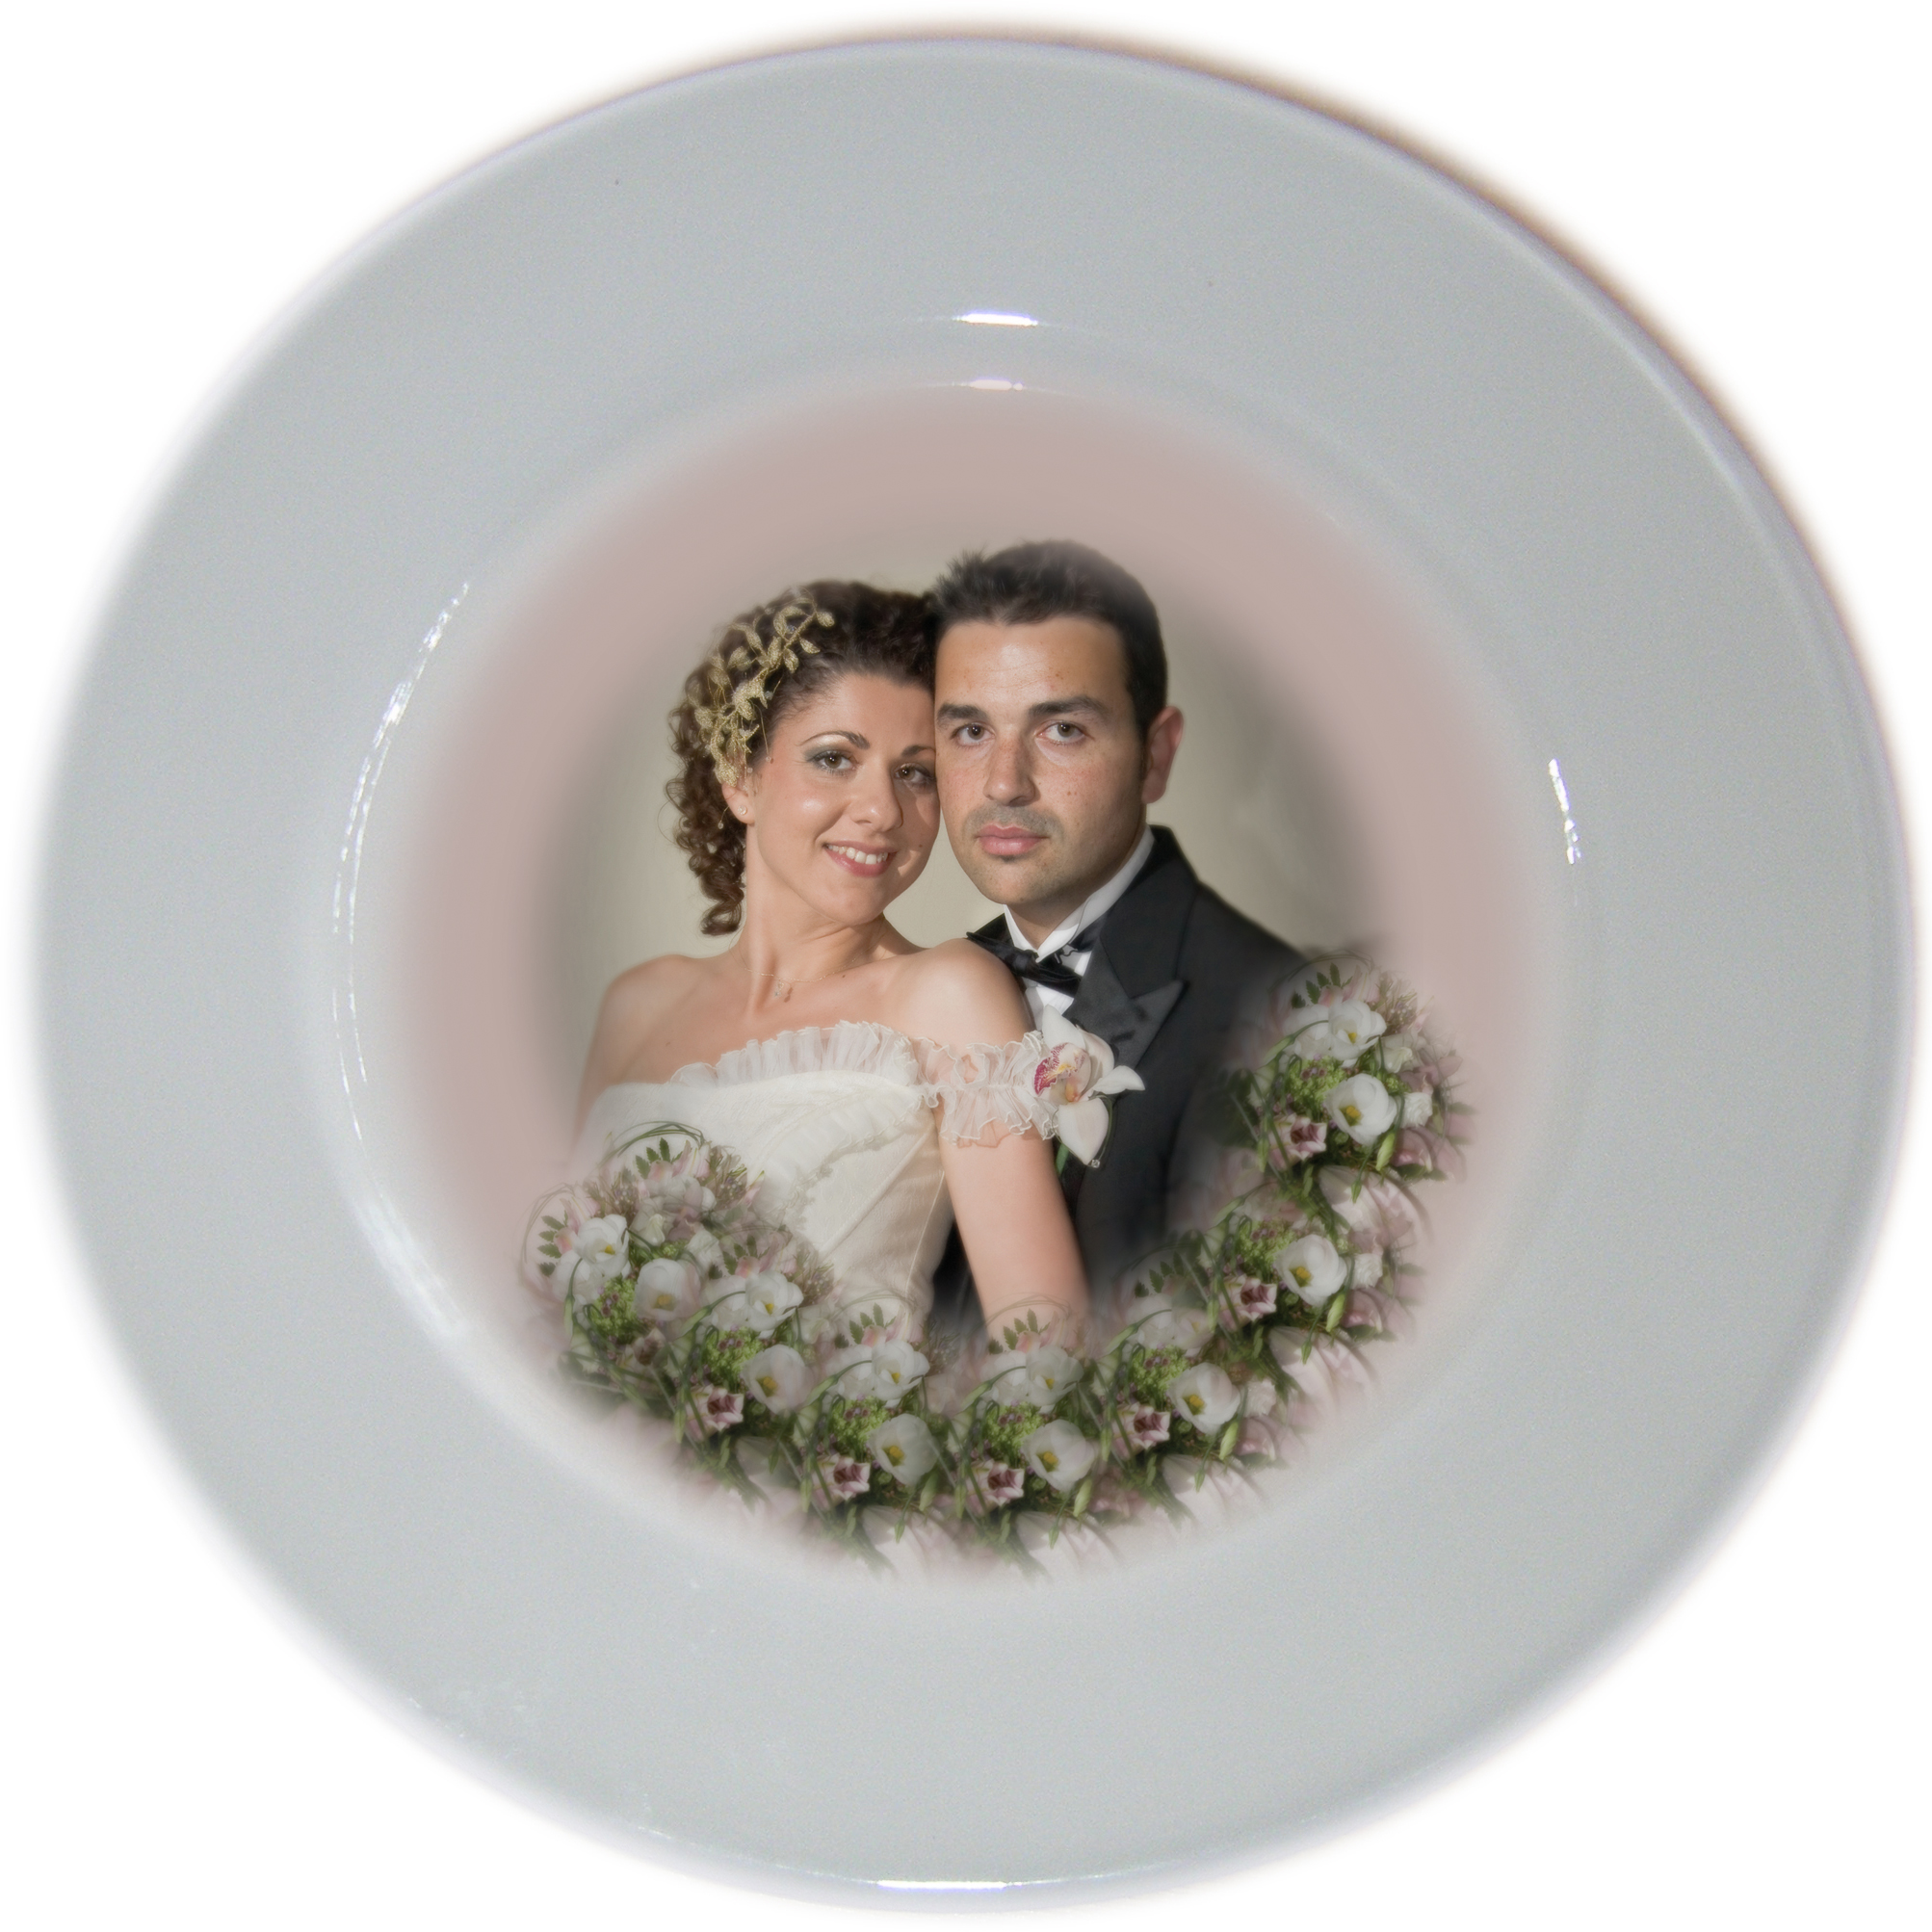 Wedding, Aniversay,Engagement Photo Plate